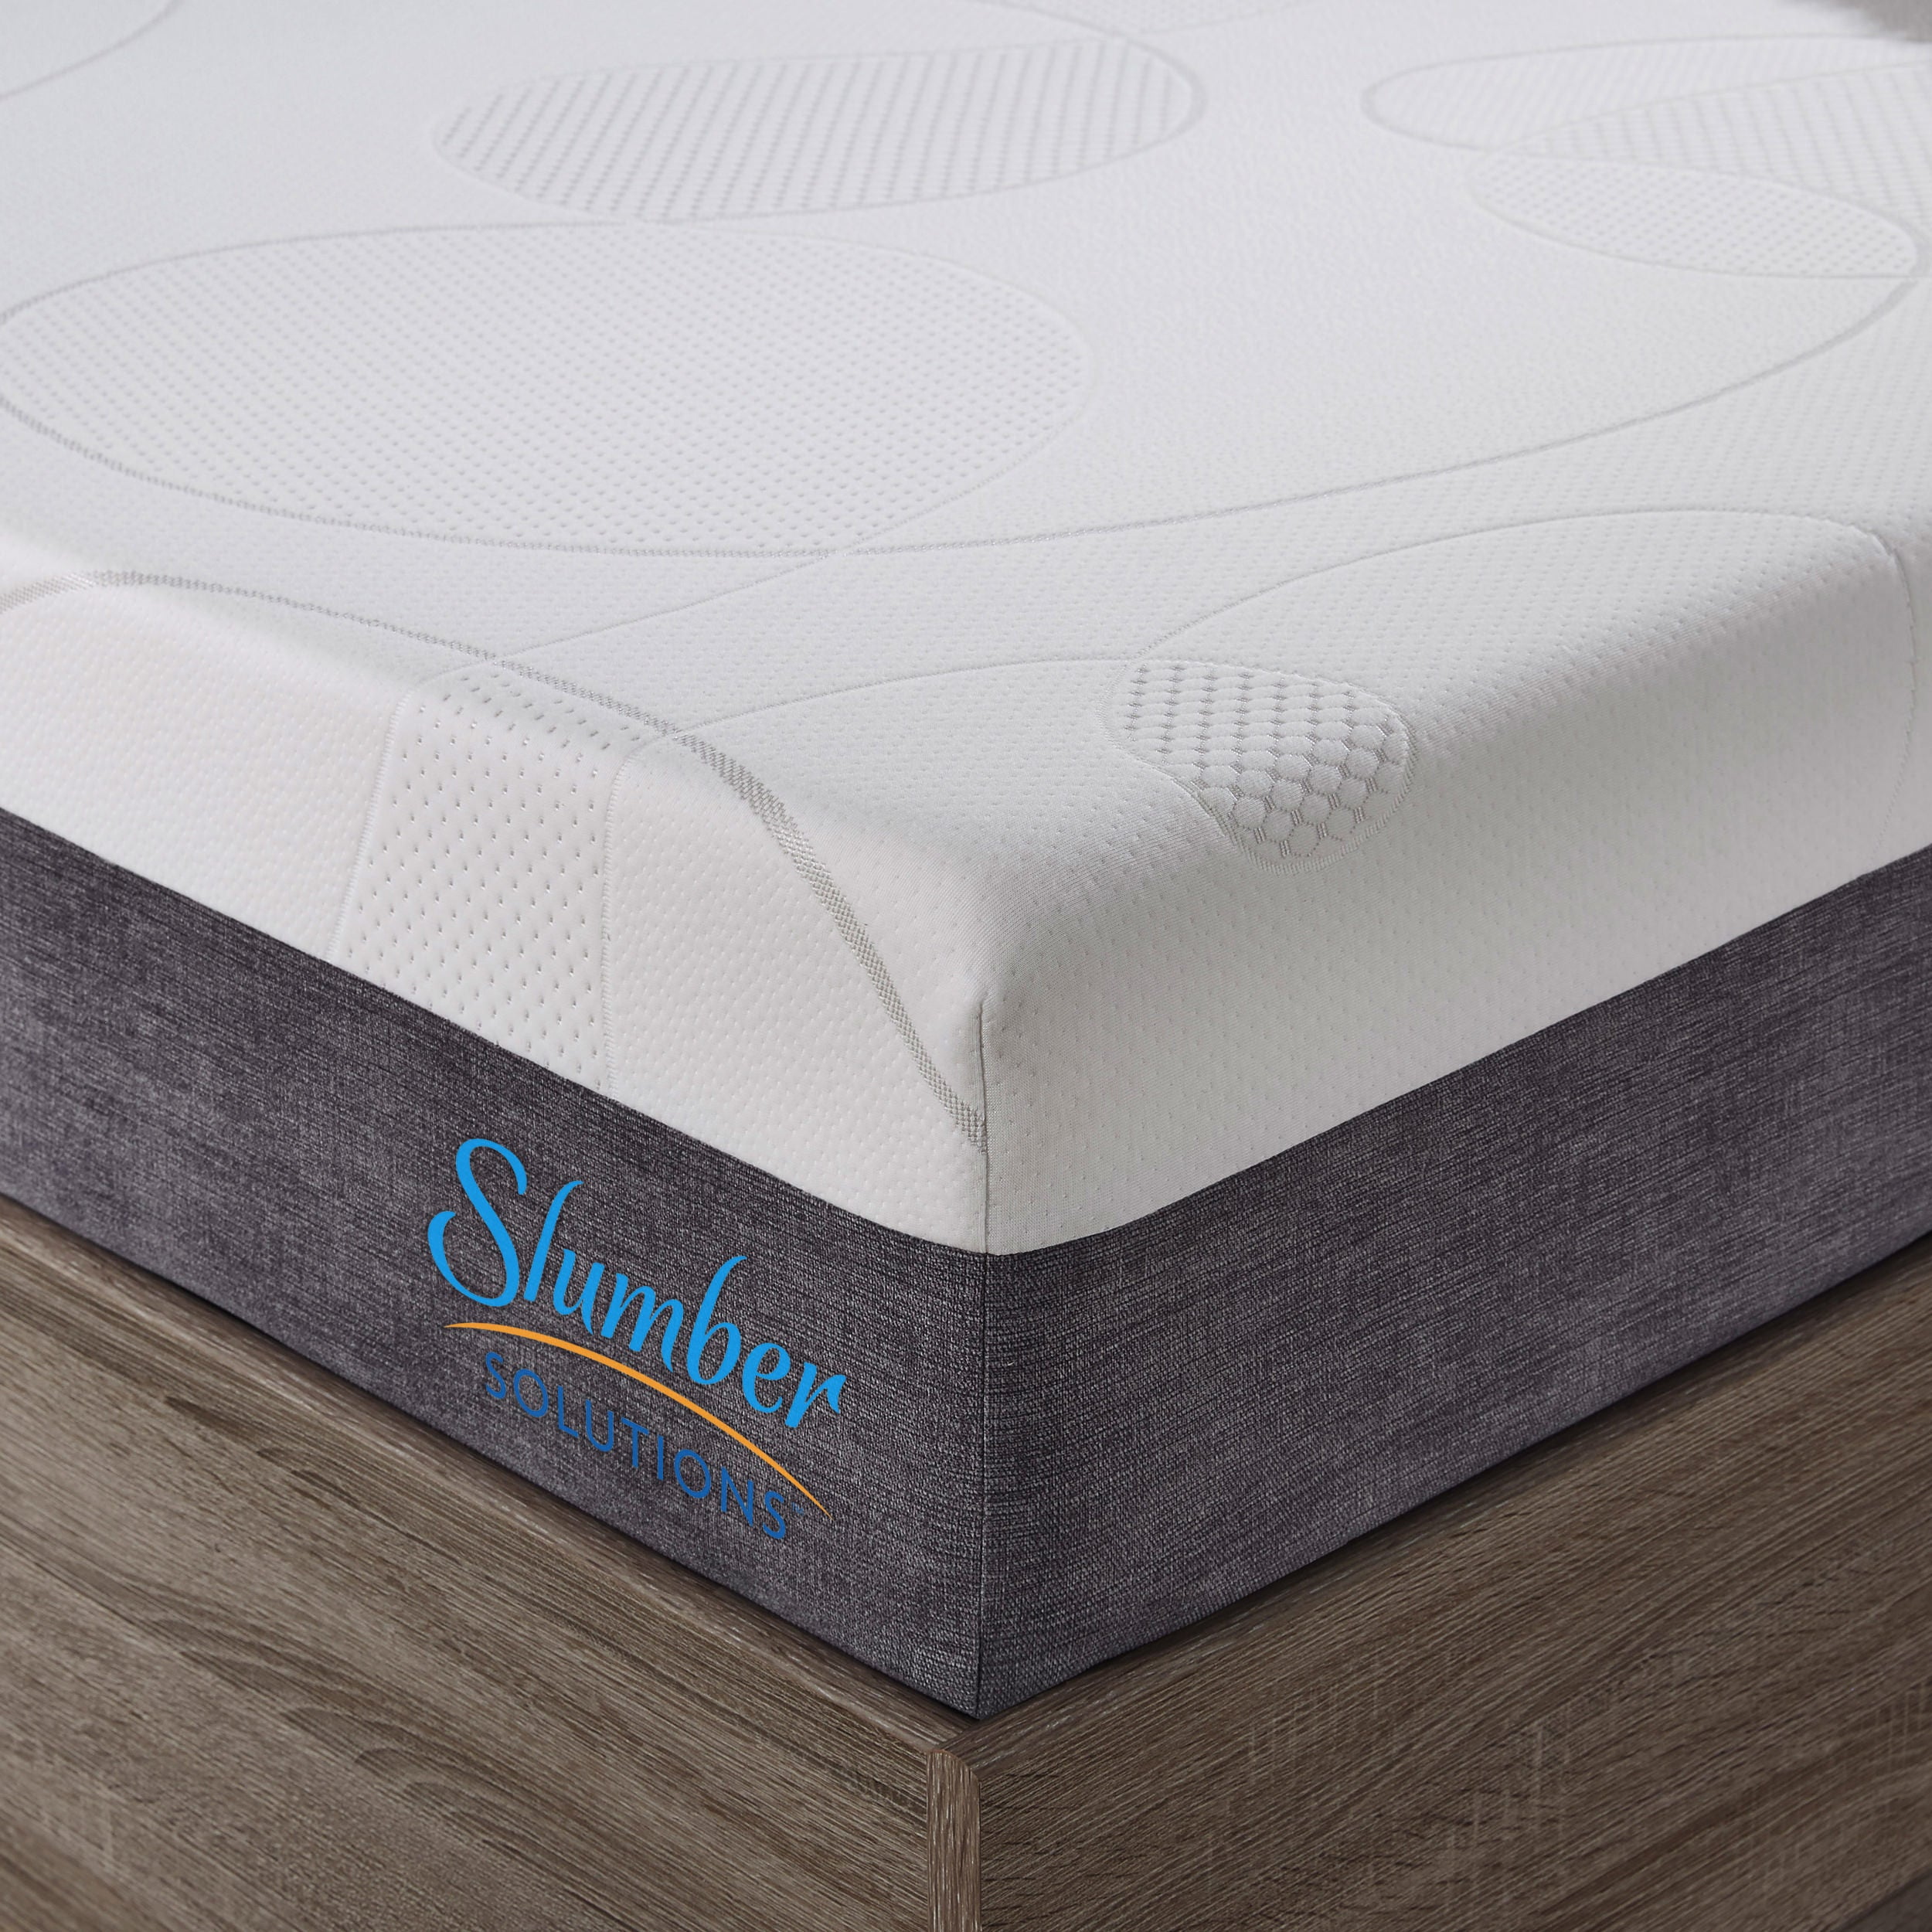 made medium for pin maximum size inches of this body is support adjusts firm comfort your mattress it memory and foam to temperature king